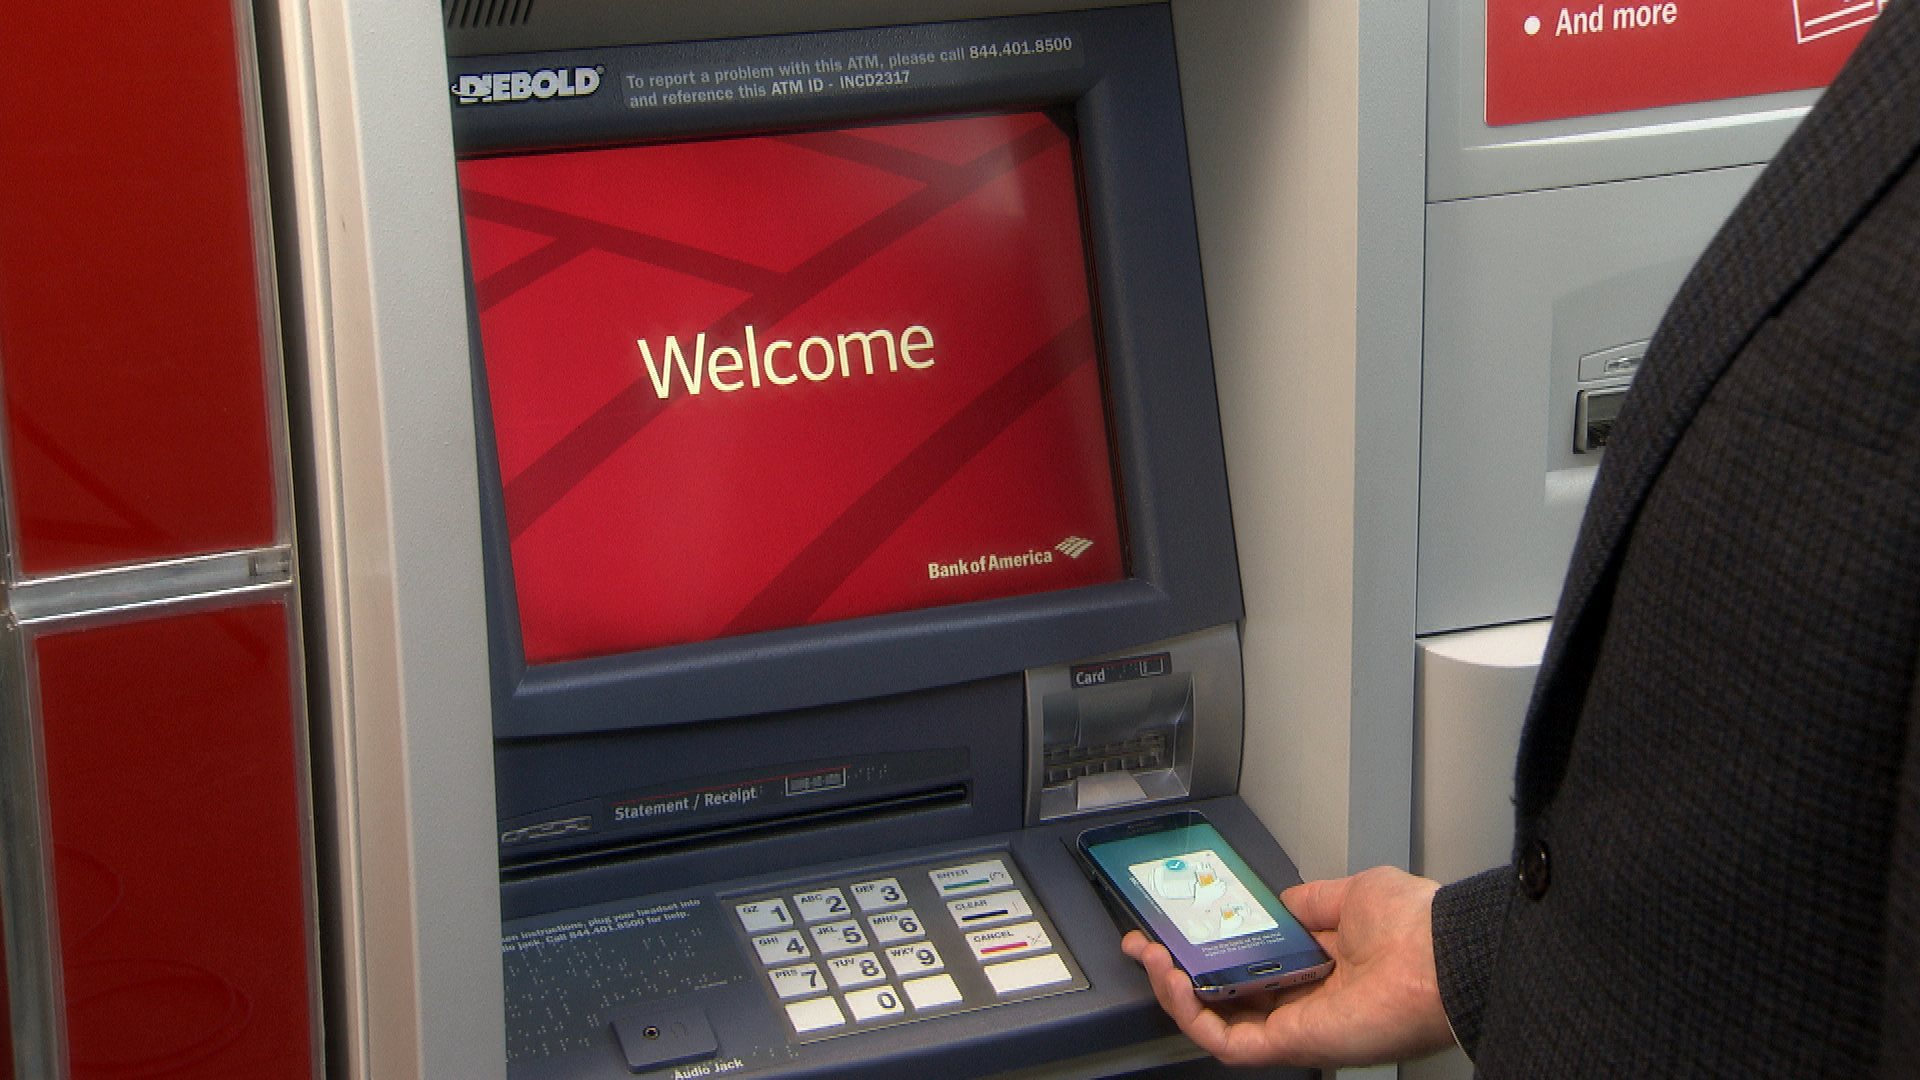 Bank_of_America_ATM_Welcome_Screen